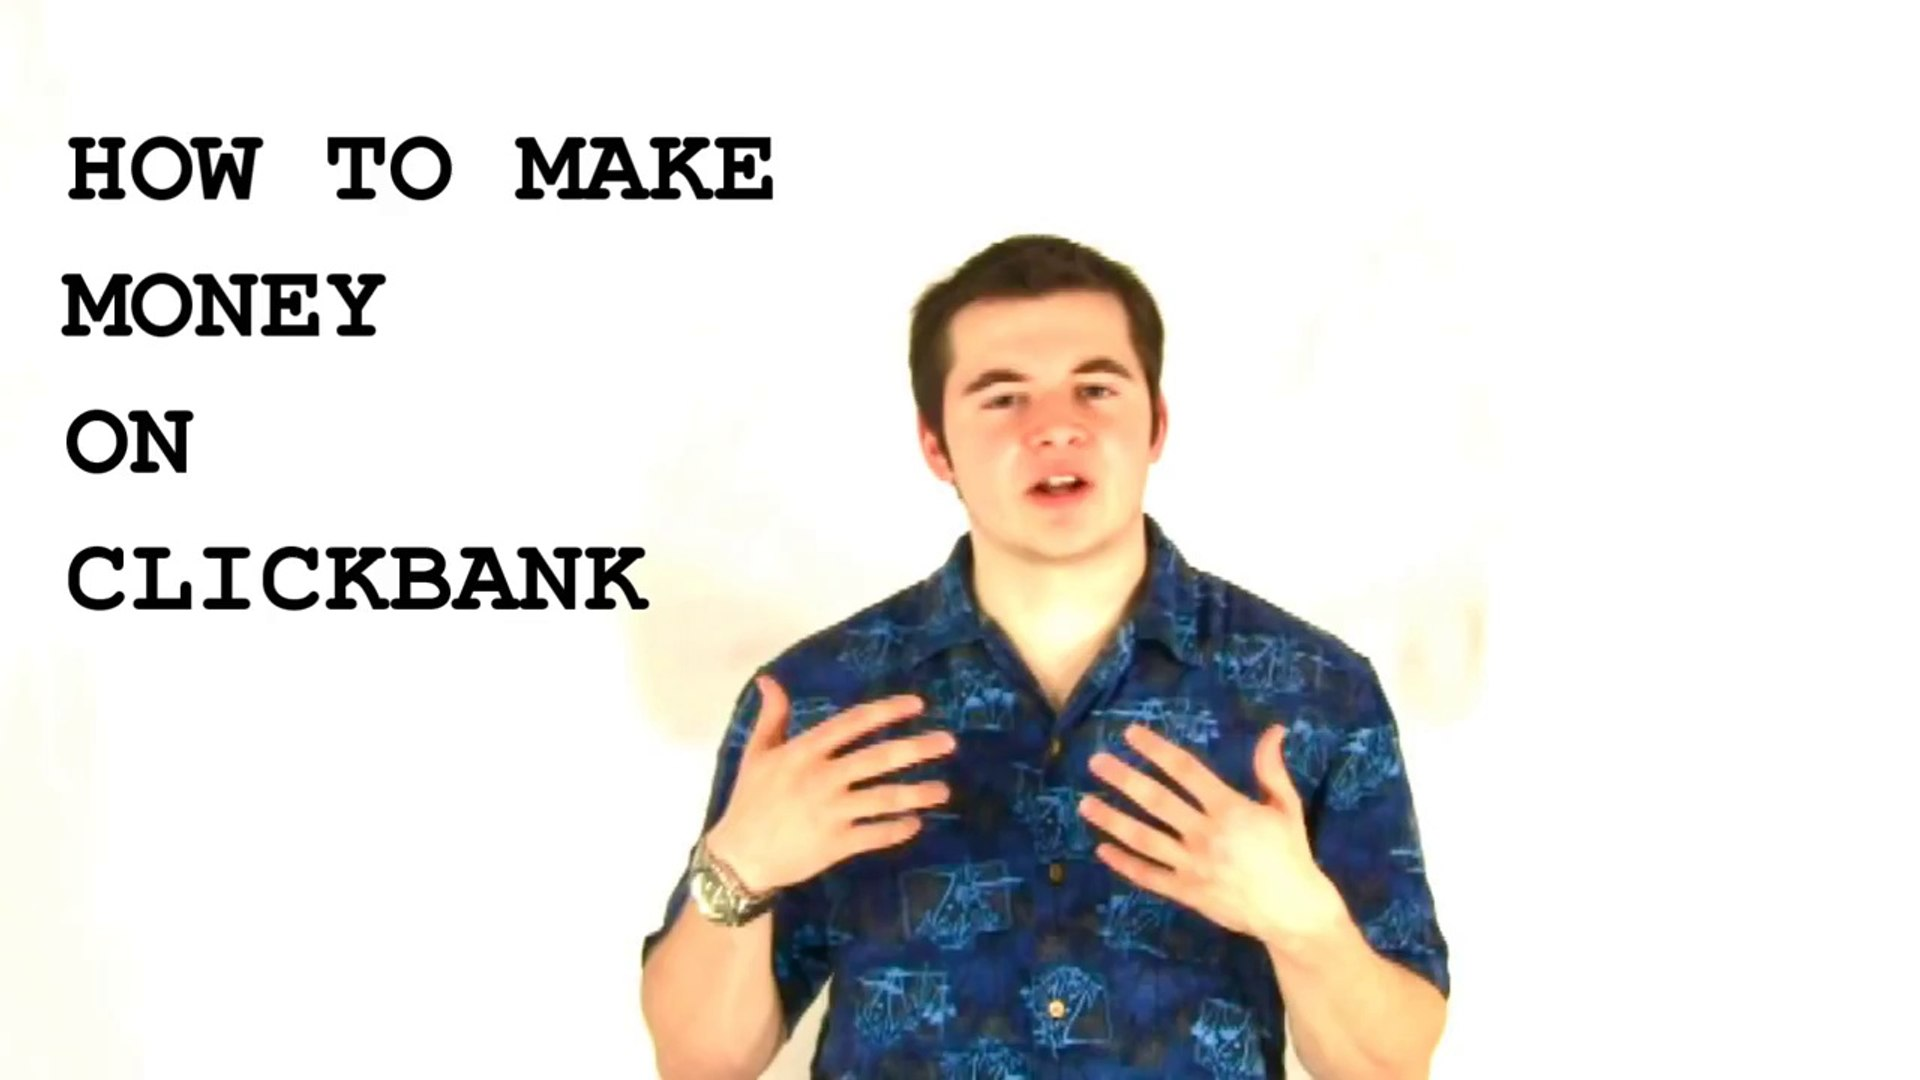 Adsense, Affiliate Marketing and Clickbank Full Review - DOWNLOAD YOUR EBOOK